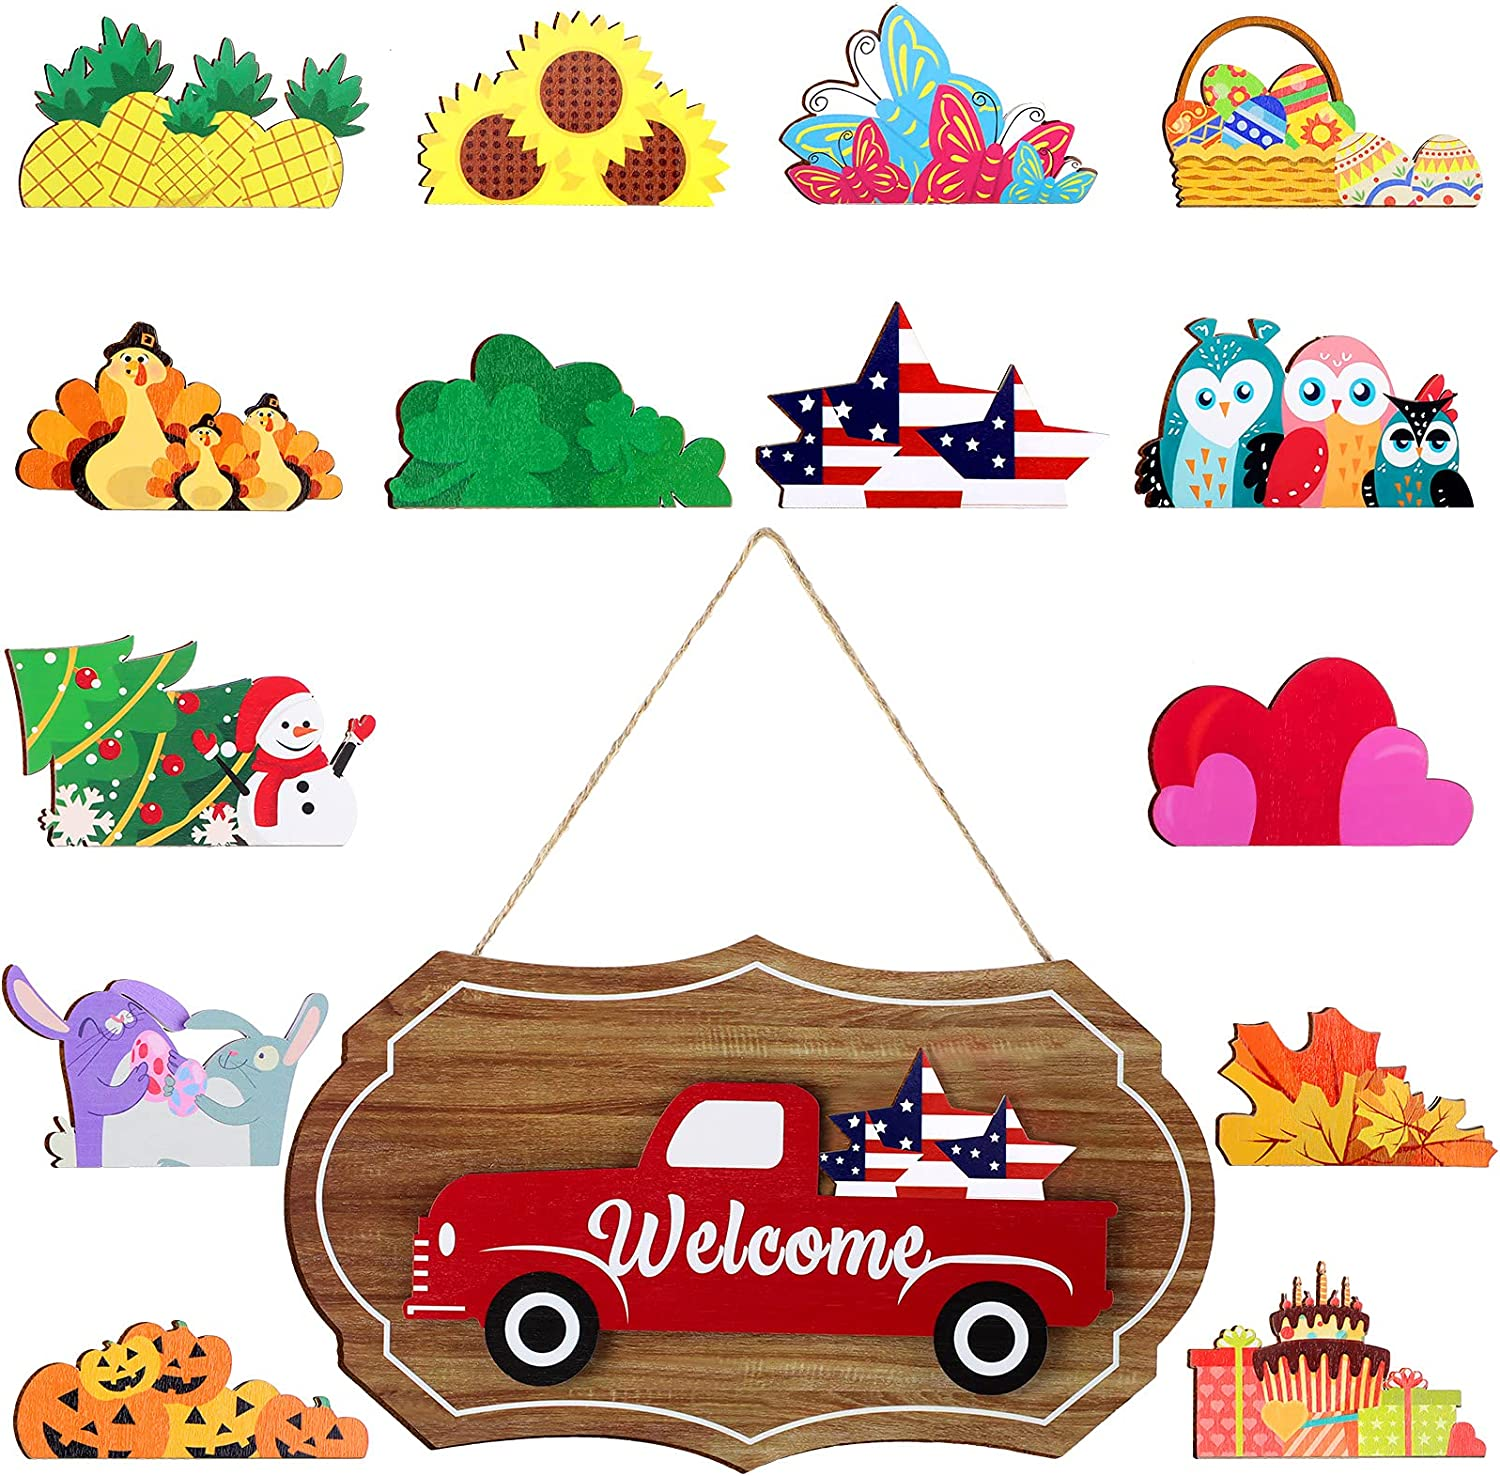 Interchangeable Seasonal Welcome Sign Vintage Truck Decor Door Sign Wall Hanging Decorations for Valentines, Easter, Independence Day, St. Patrick's Day Welcome Sign Front Door Decor 12.8 x 7.5 Inch